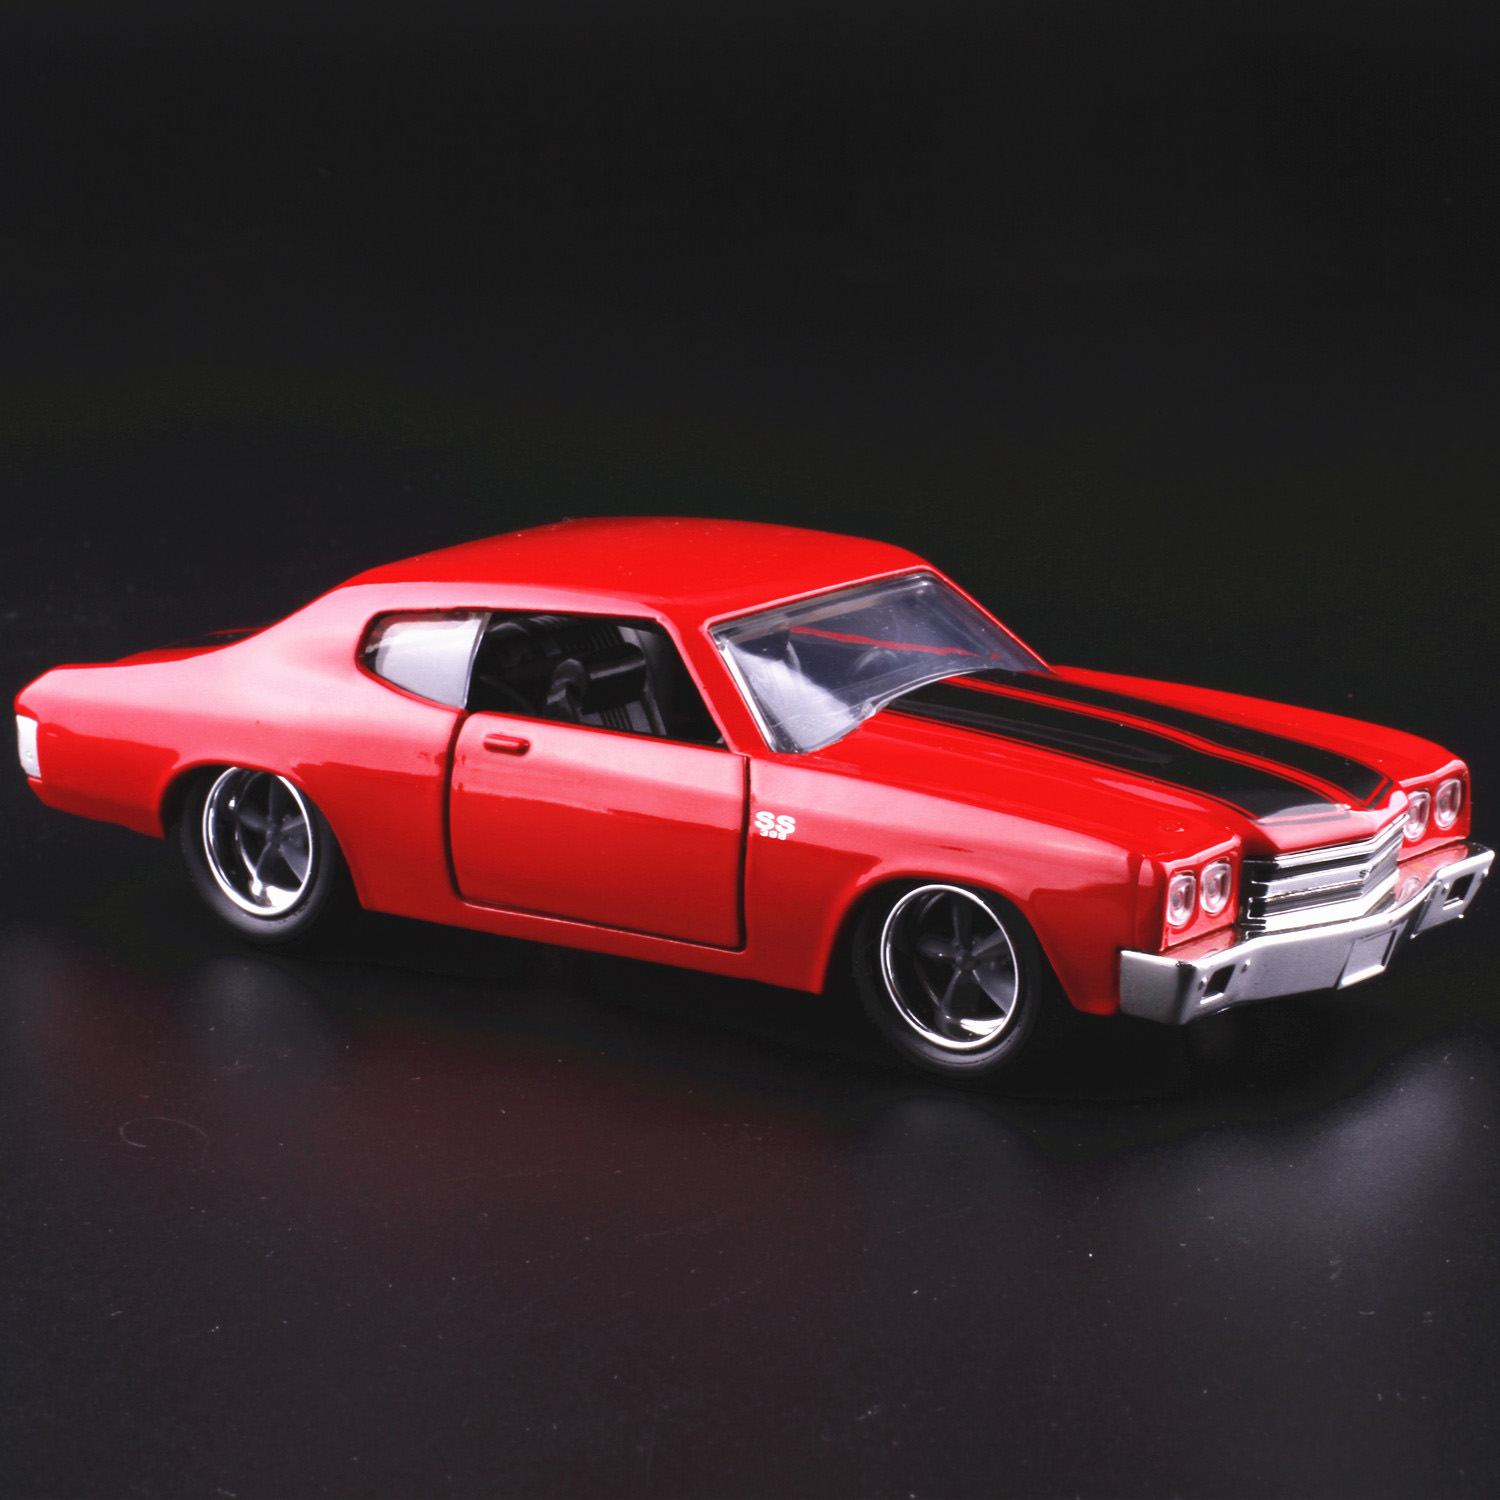 JADA 1:32 scale High simulation alloy model carChevrolet SS1970 classic car,2 open door,quality toy models,free shipping jada